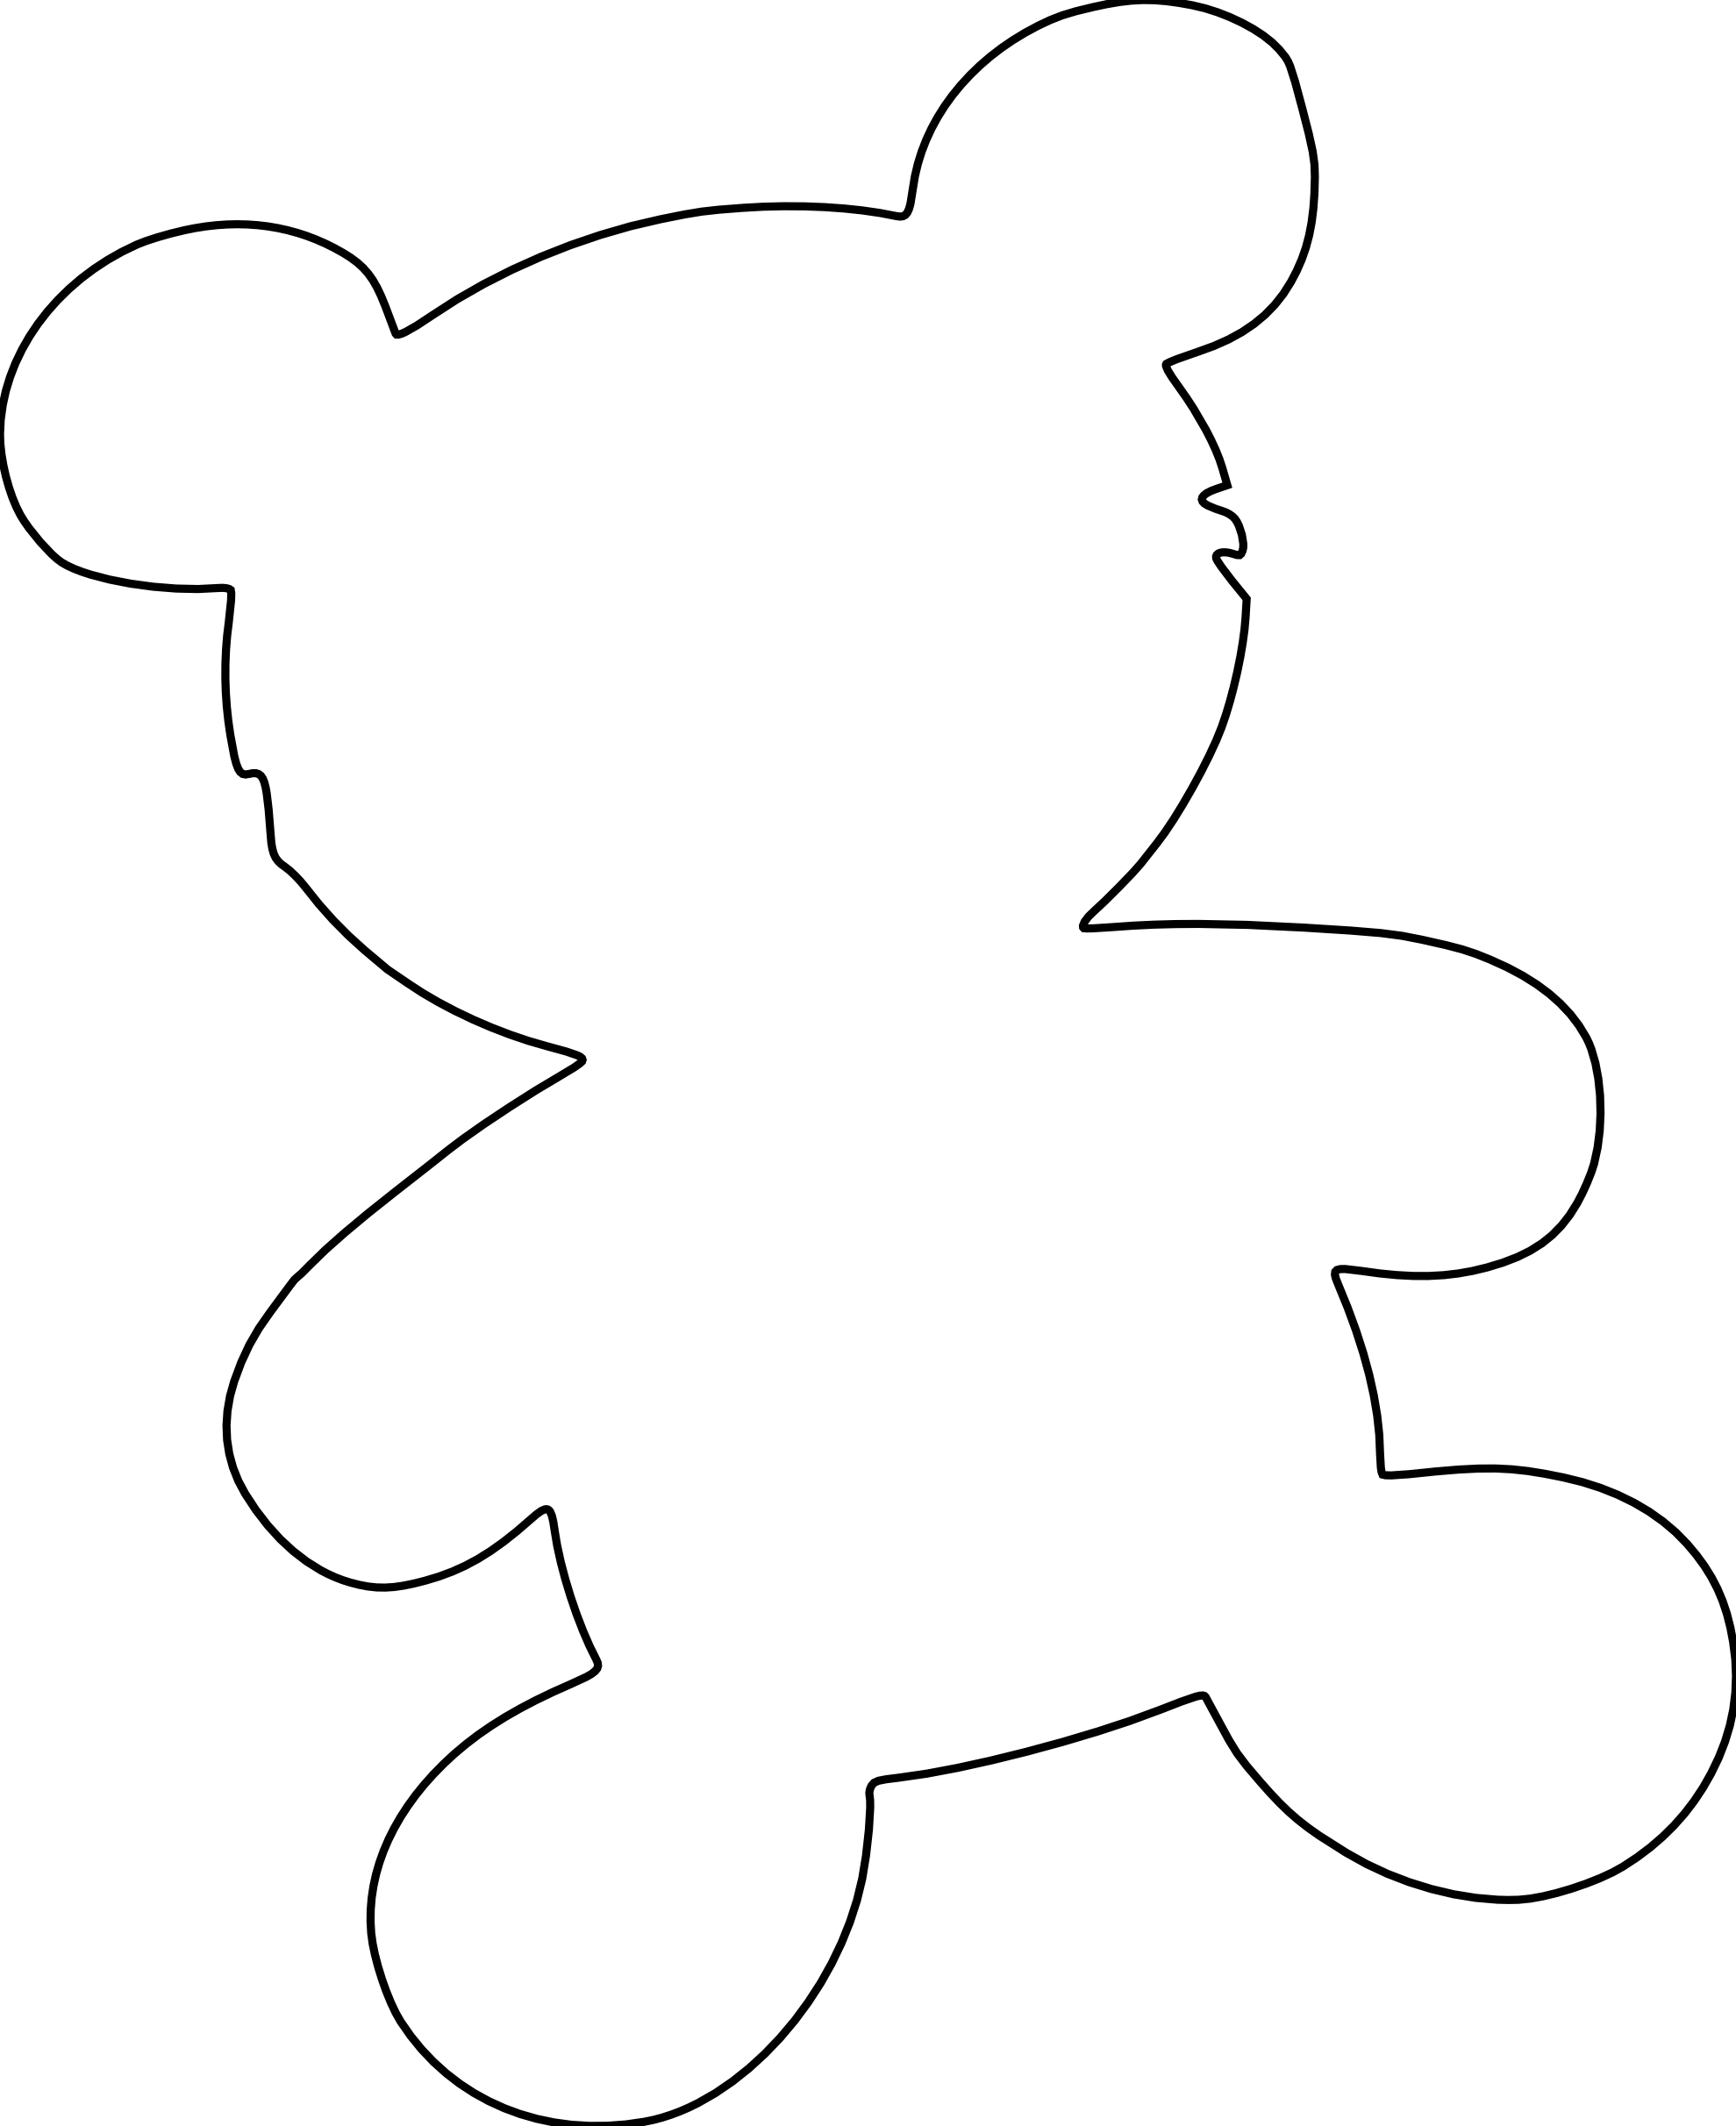 Bear clipart outline. Teddy panda free images